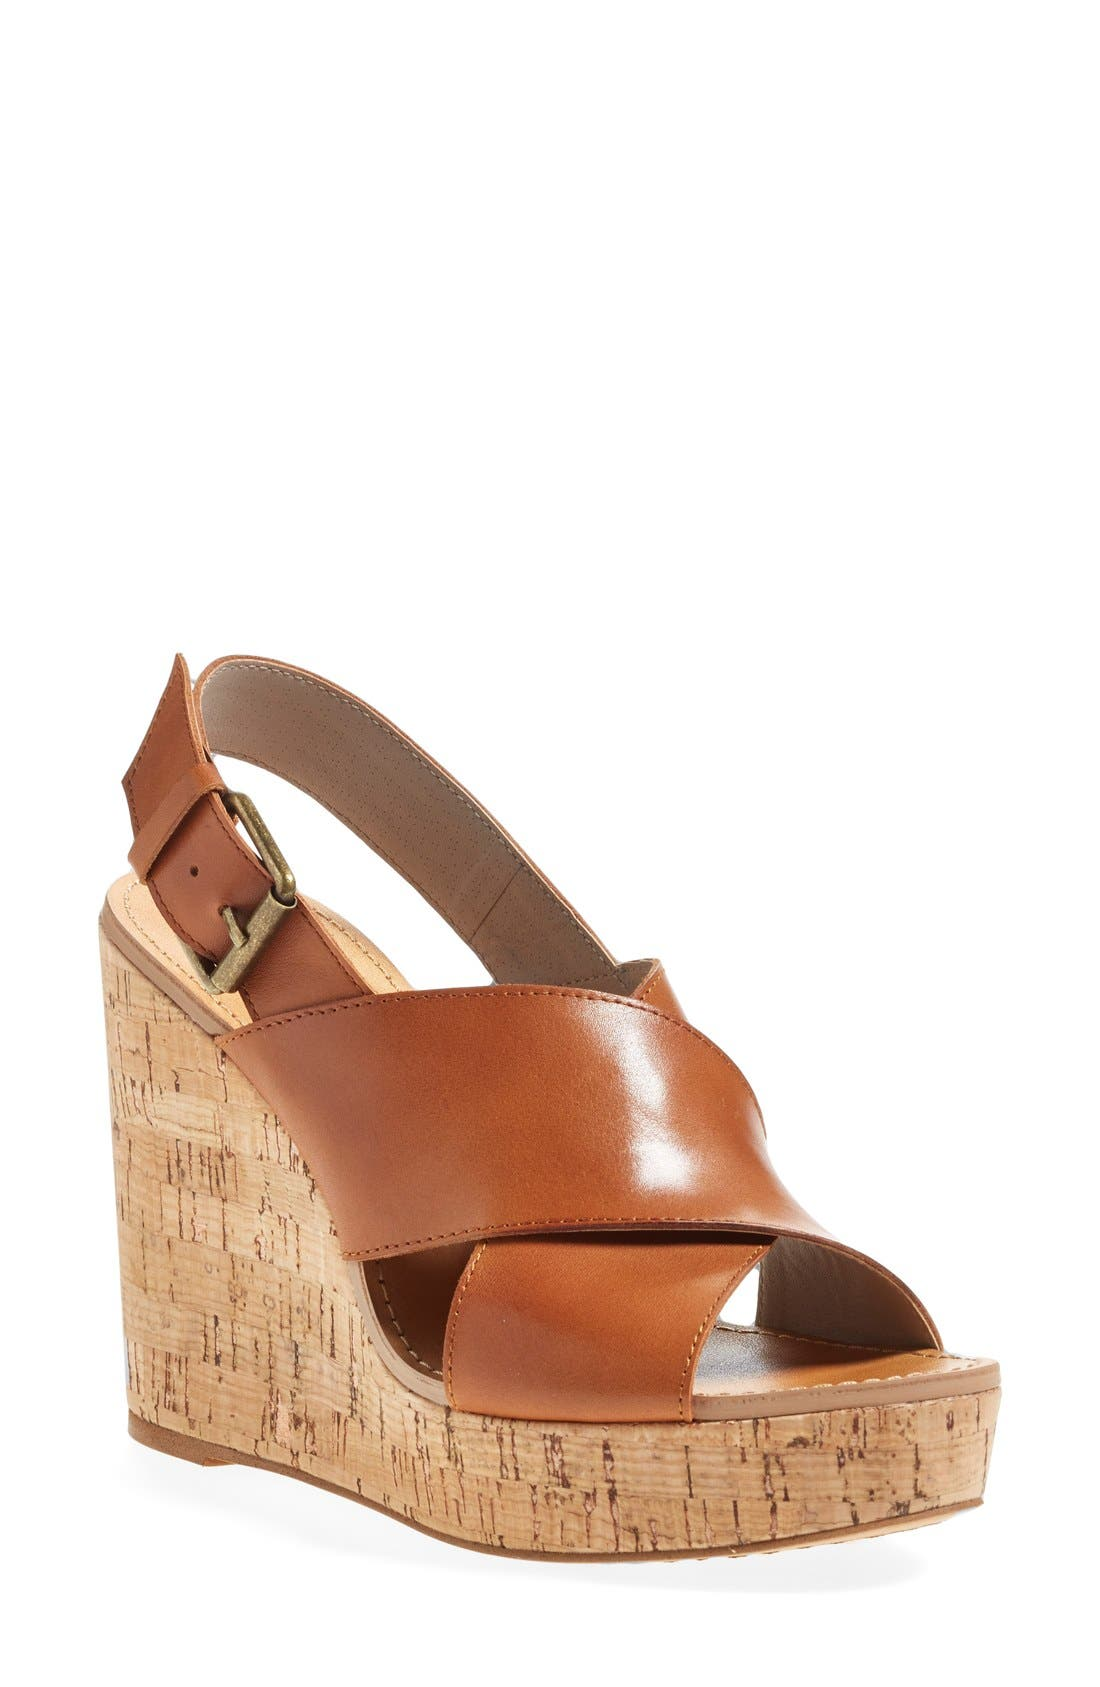 Alternate Image 1 Selected - Hinge 'Hannah' Wedge Sandal (Women)